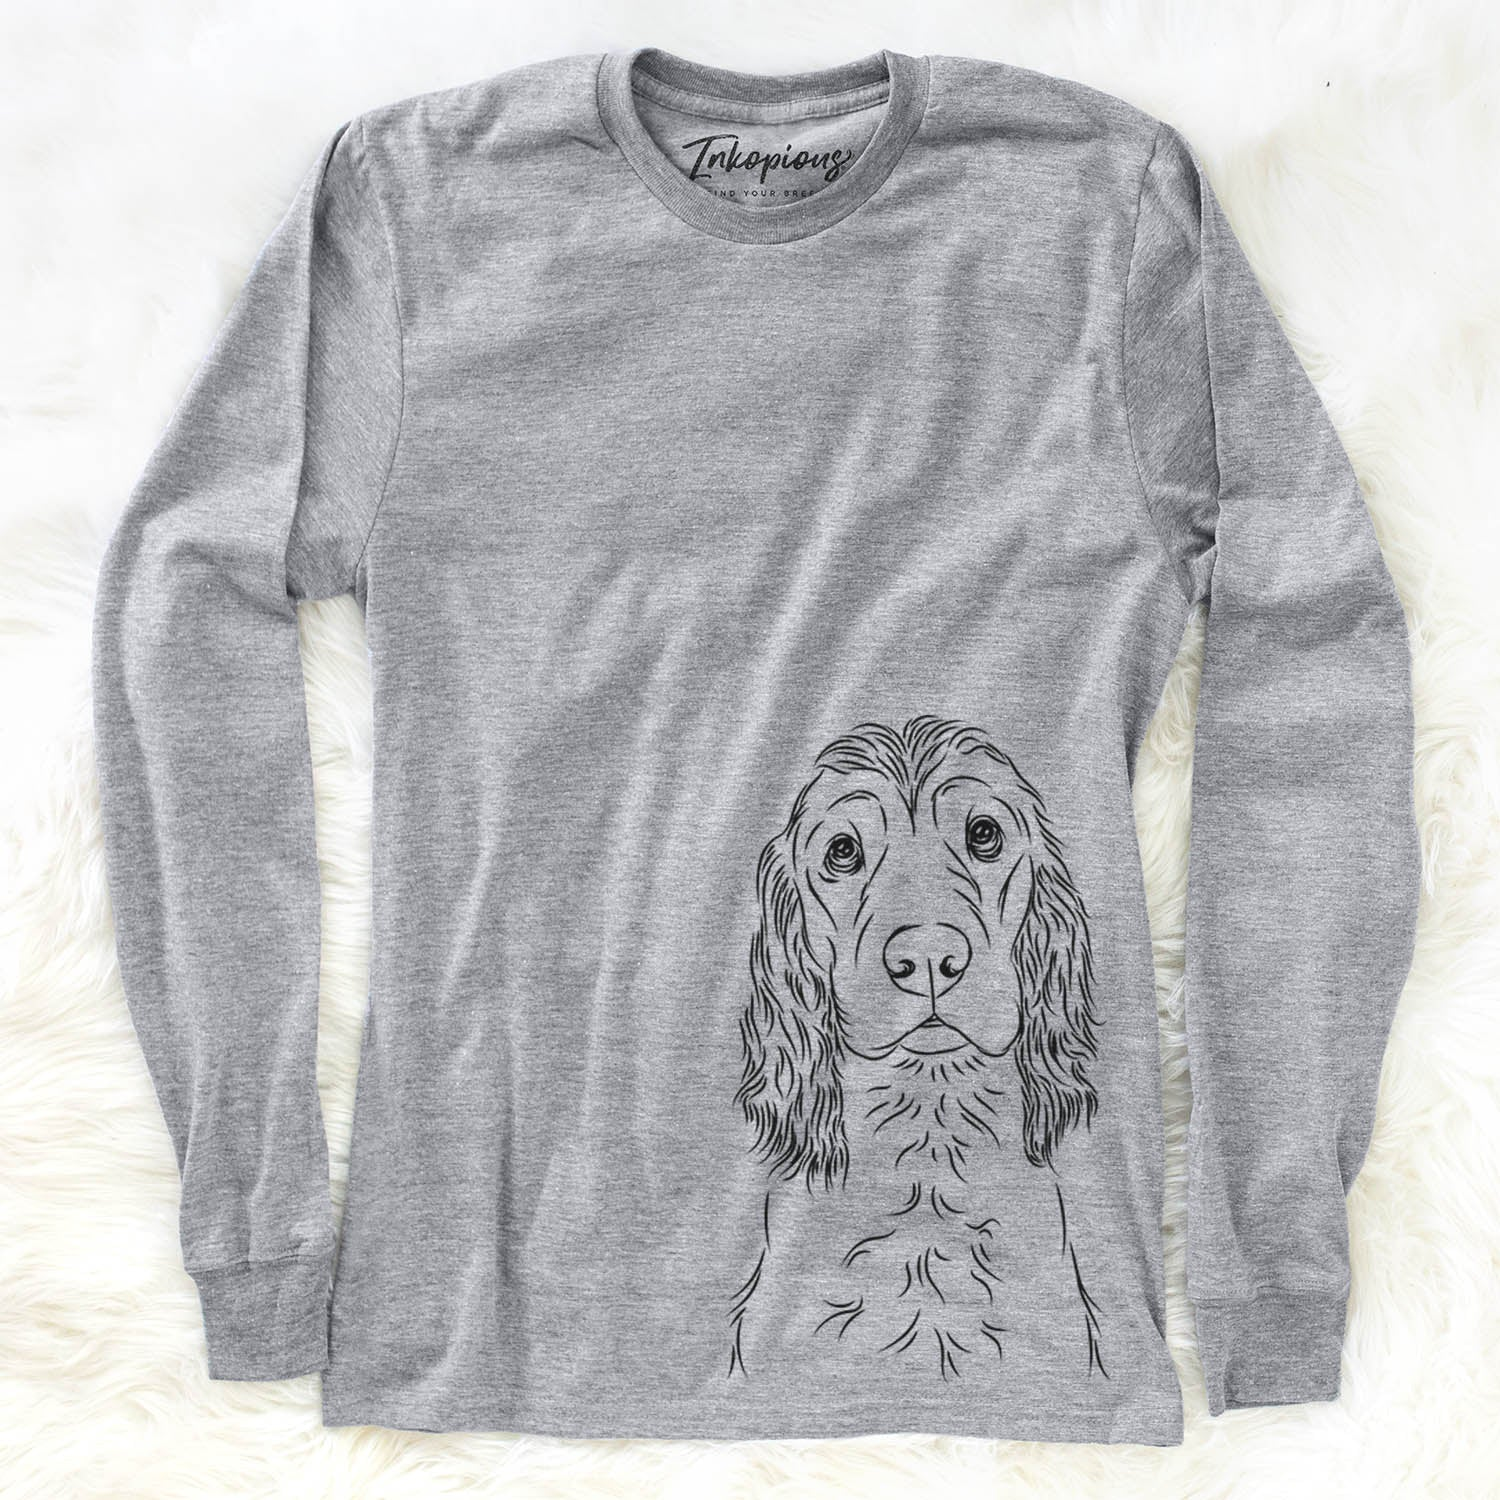 Logan the Cocker Spaniel - Long Sleeve Crewneck